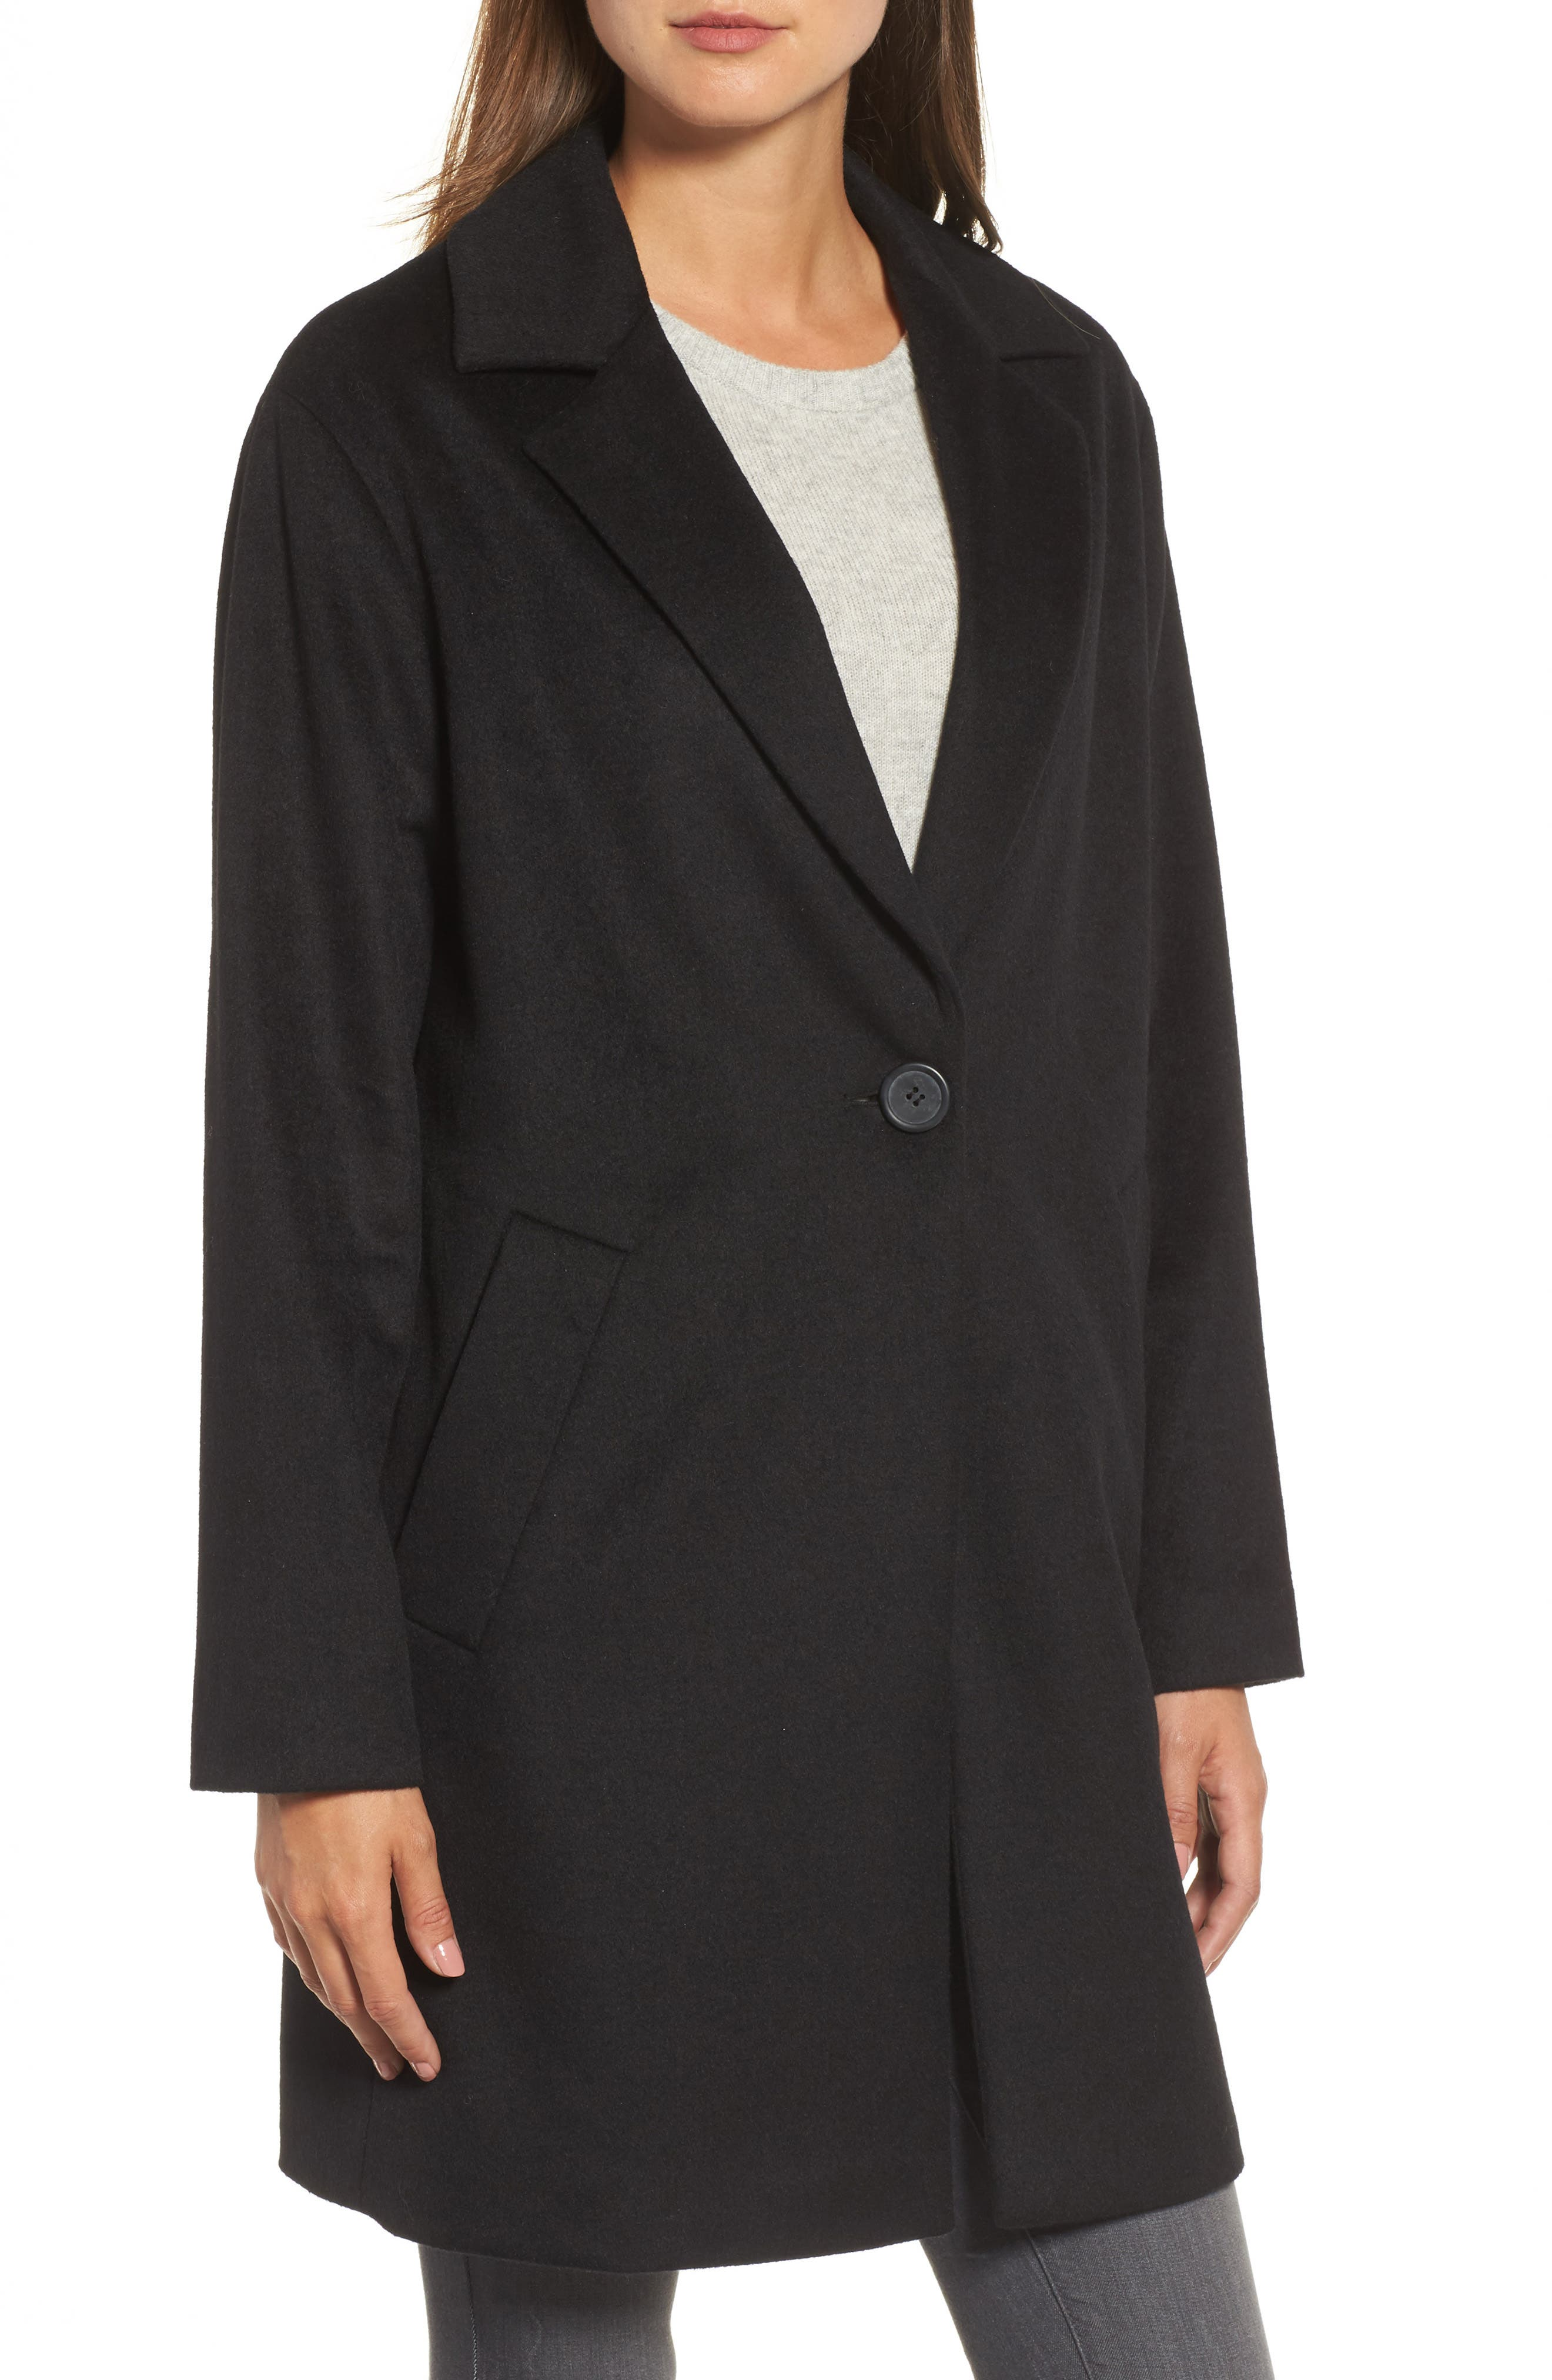 Wool Blend Coat,                             Alternate thumbnail 4, color,                             001